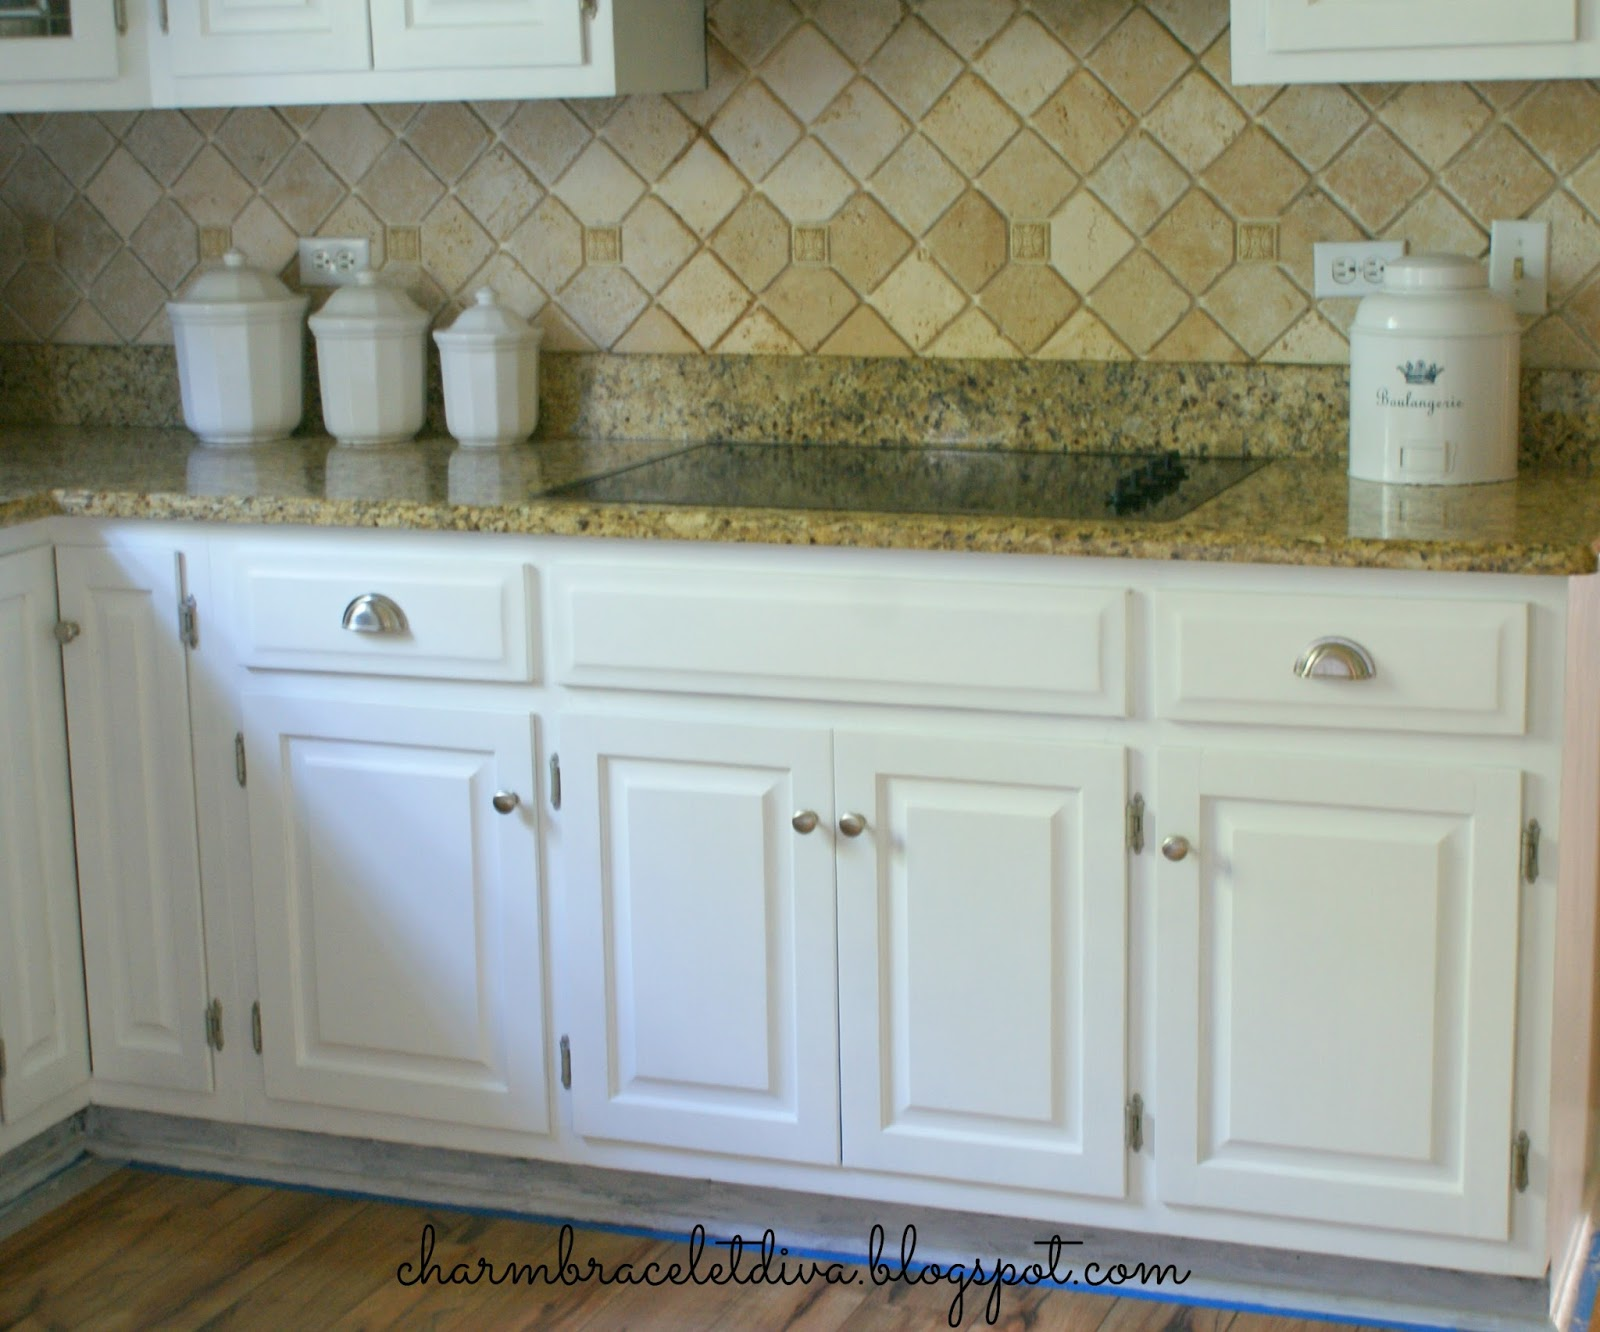 Our Hopeful Home Diy White Modern Farmhouse Painted Kitchen Cabinets